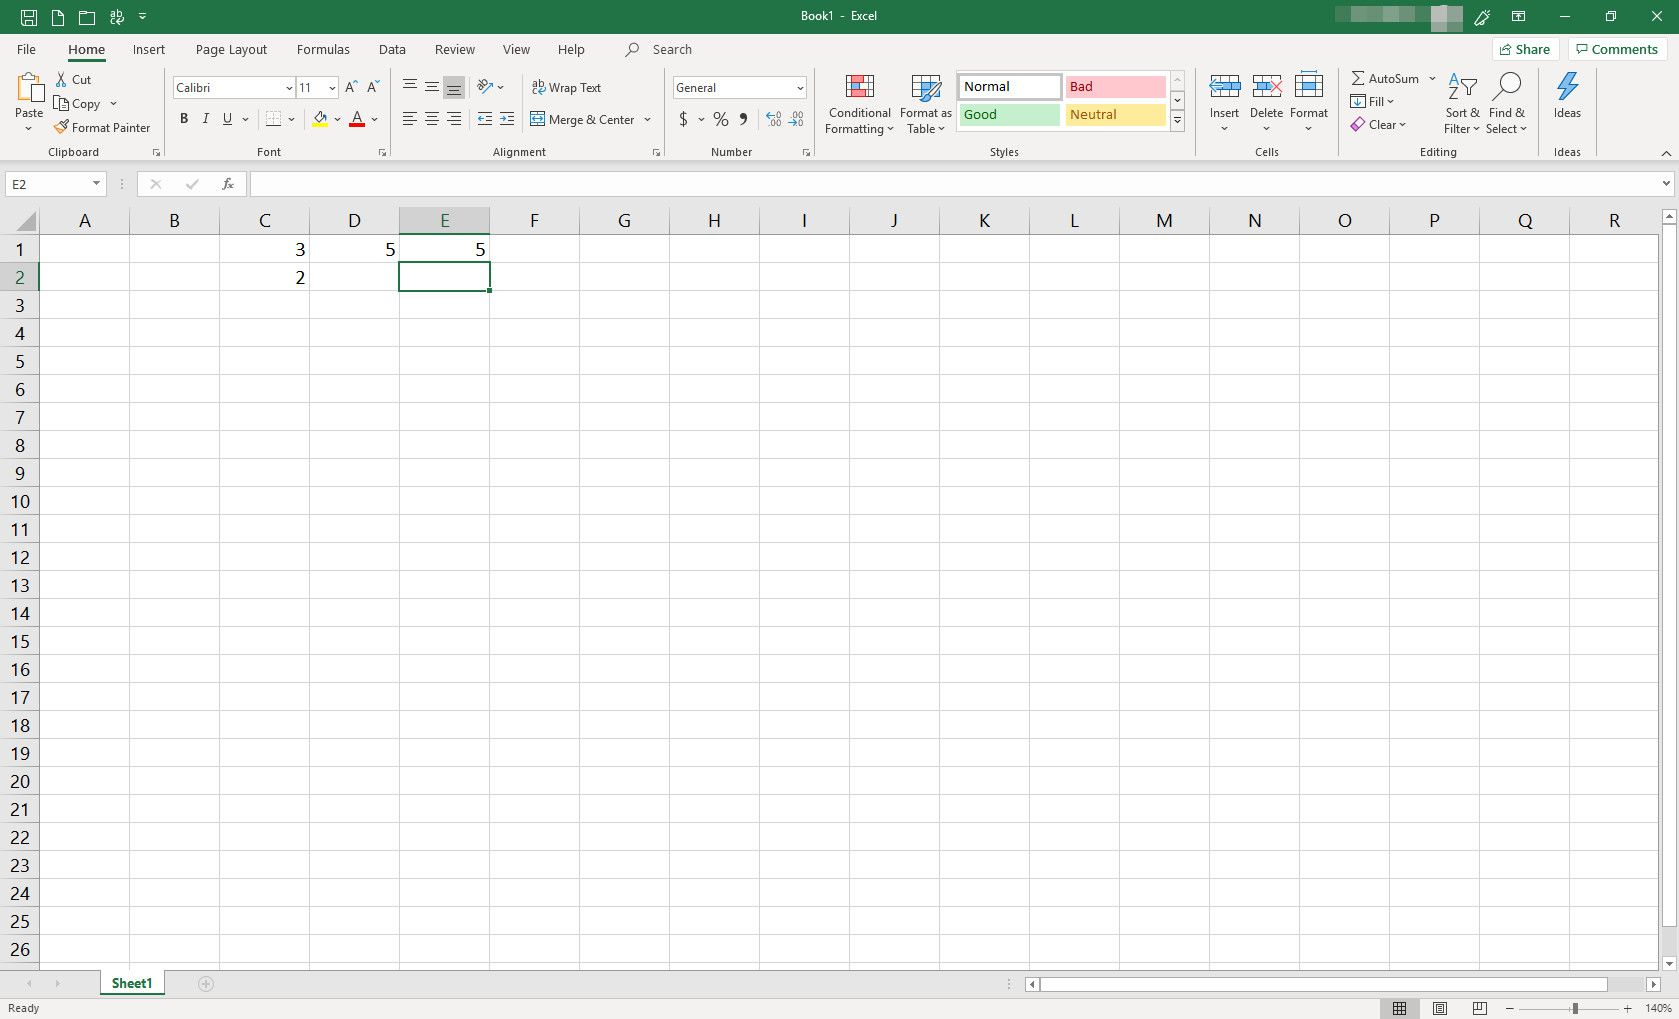 MS Excel spreadsheet with several cells populated